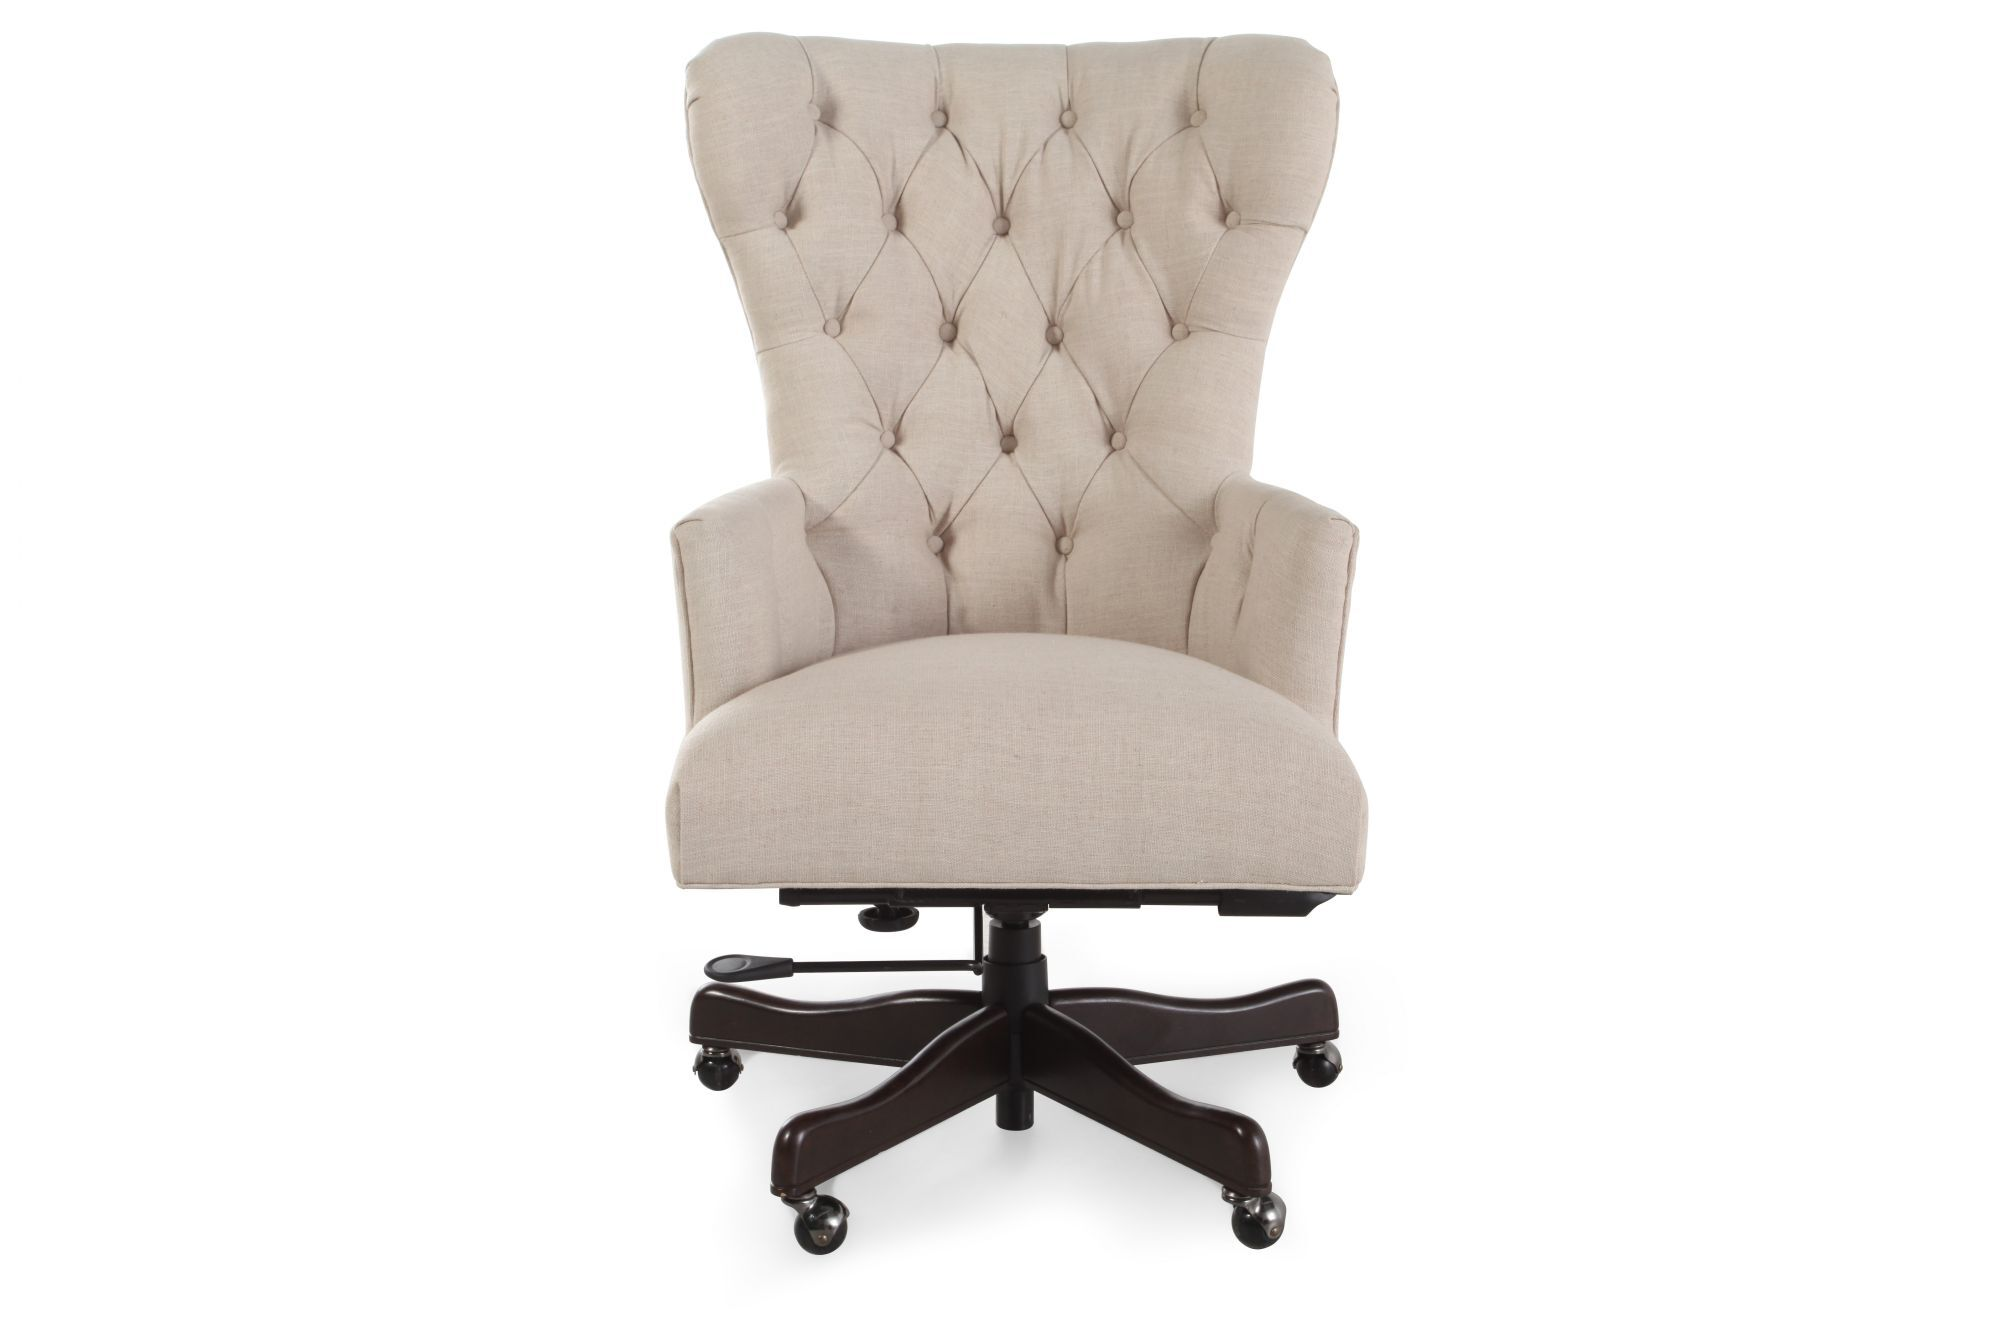 button tufted swivel desk chair in natchez brown mathis brothers furniture [ 2000 x 1333 Pixel ]